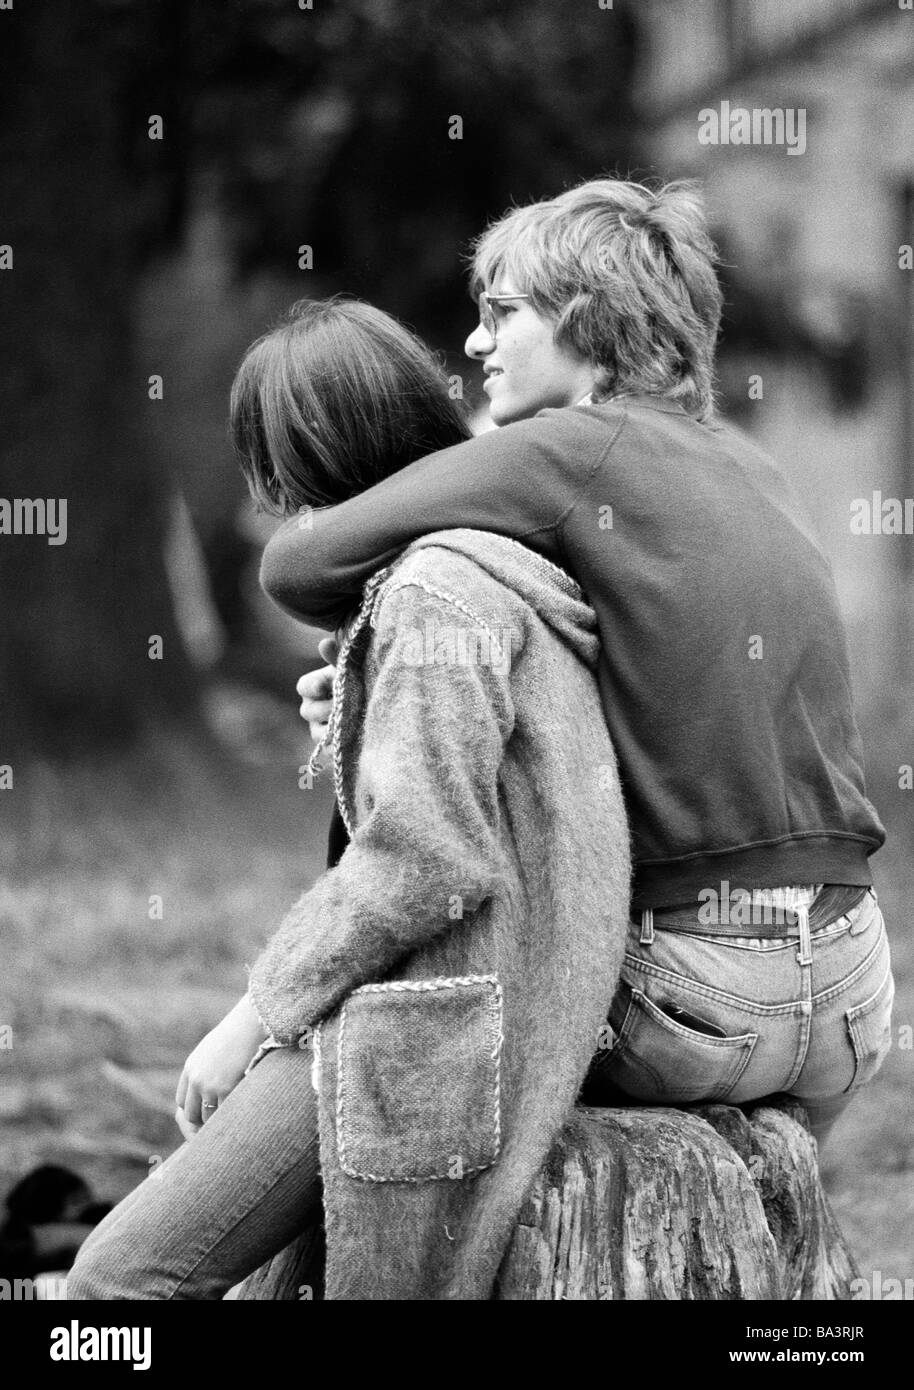 Eighties, black and white photo, people, young couple, aged 17 to 20 years - Stock Image